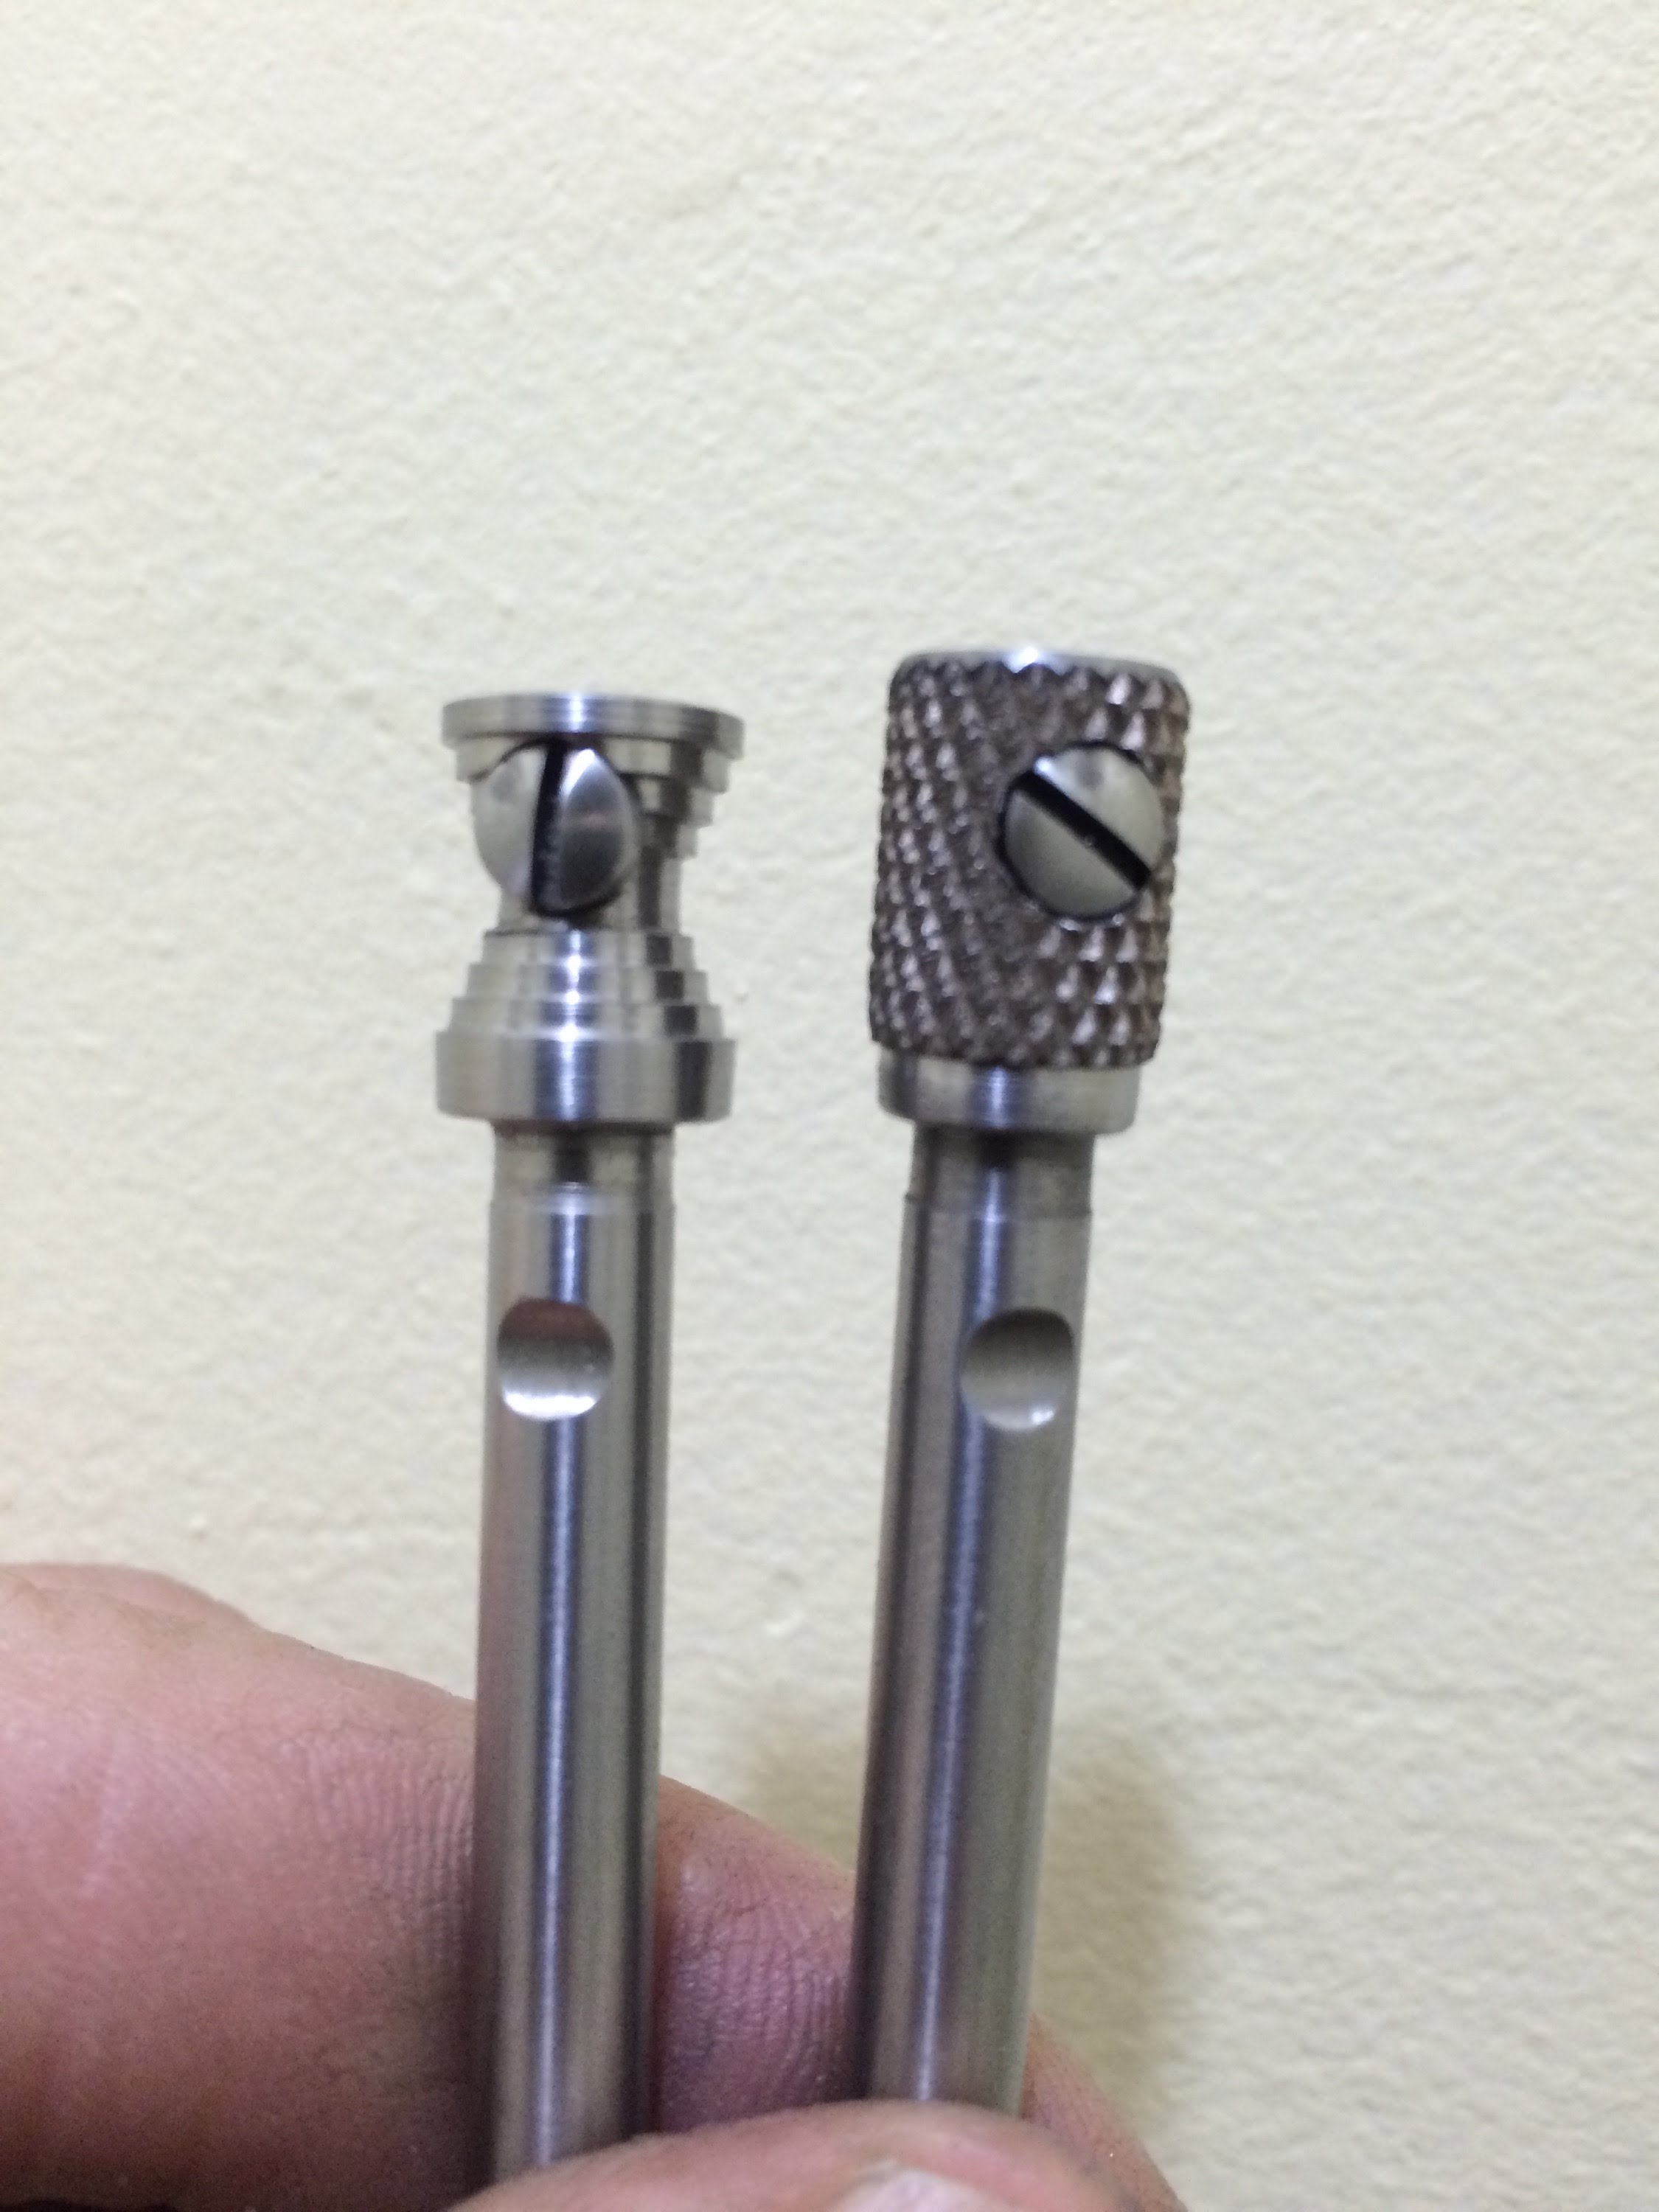 Two styles of Base Pin for the Ruger Bisley 454 and 480